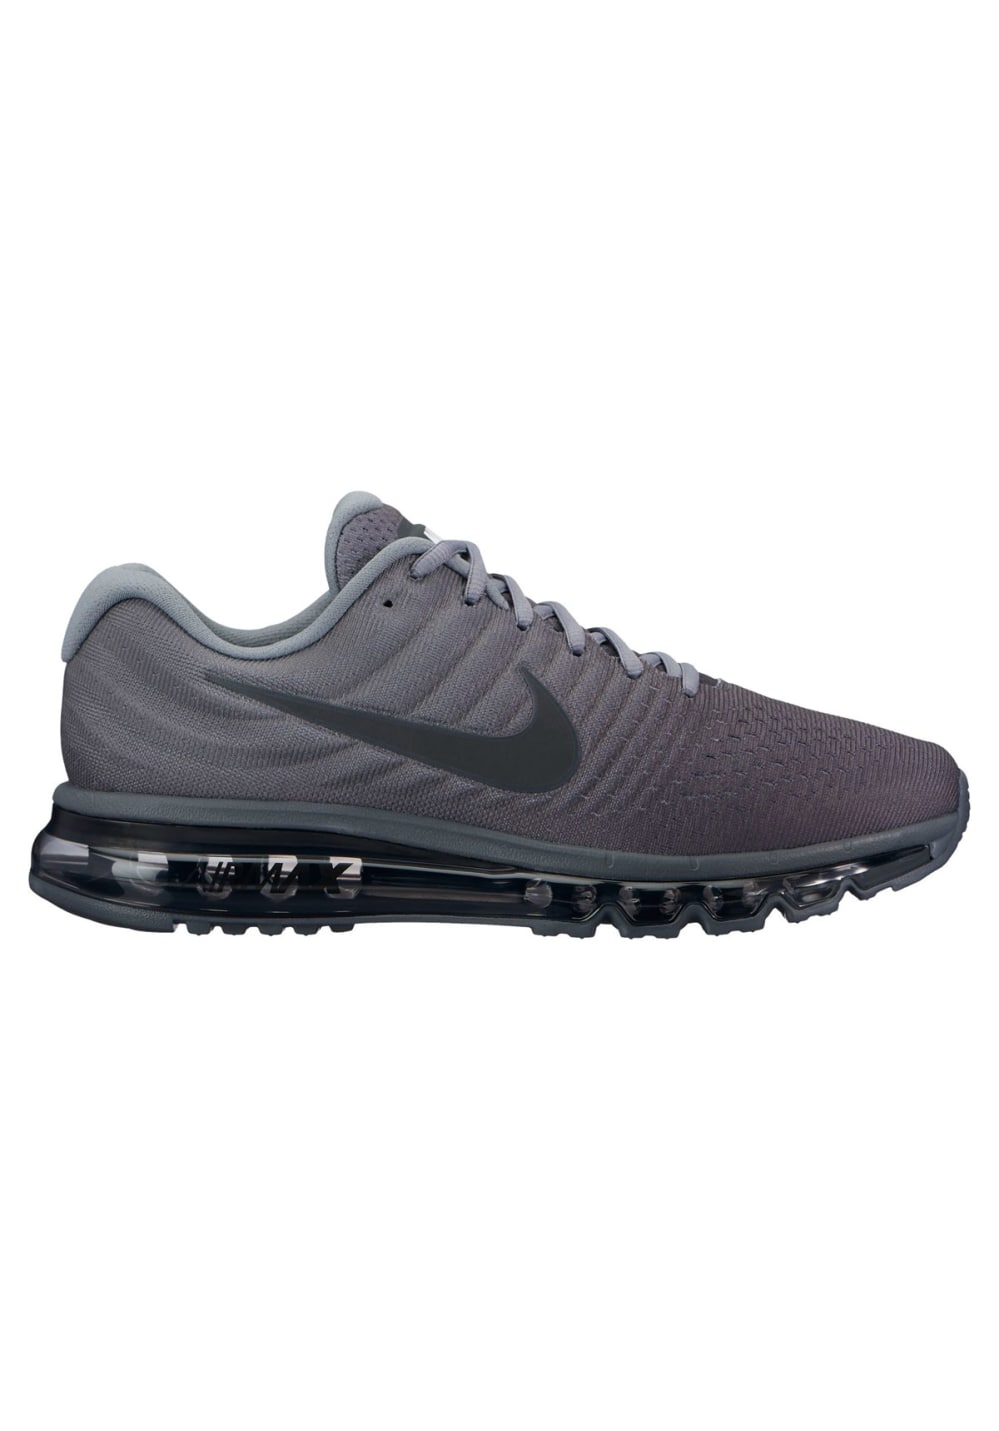 reputable site 88314 b21fc Nike Air Max 2017 - Running shoes for Men - Grey